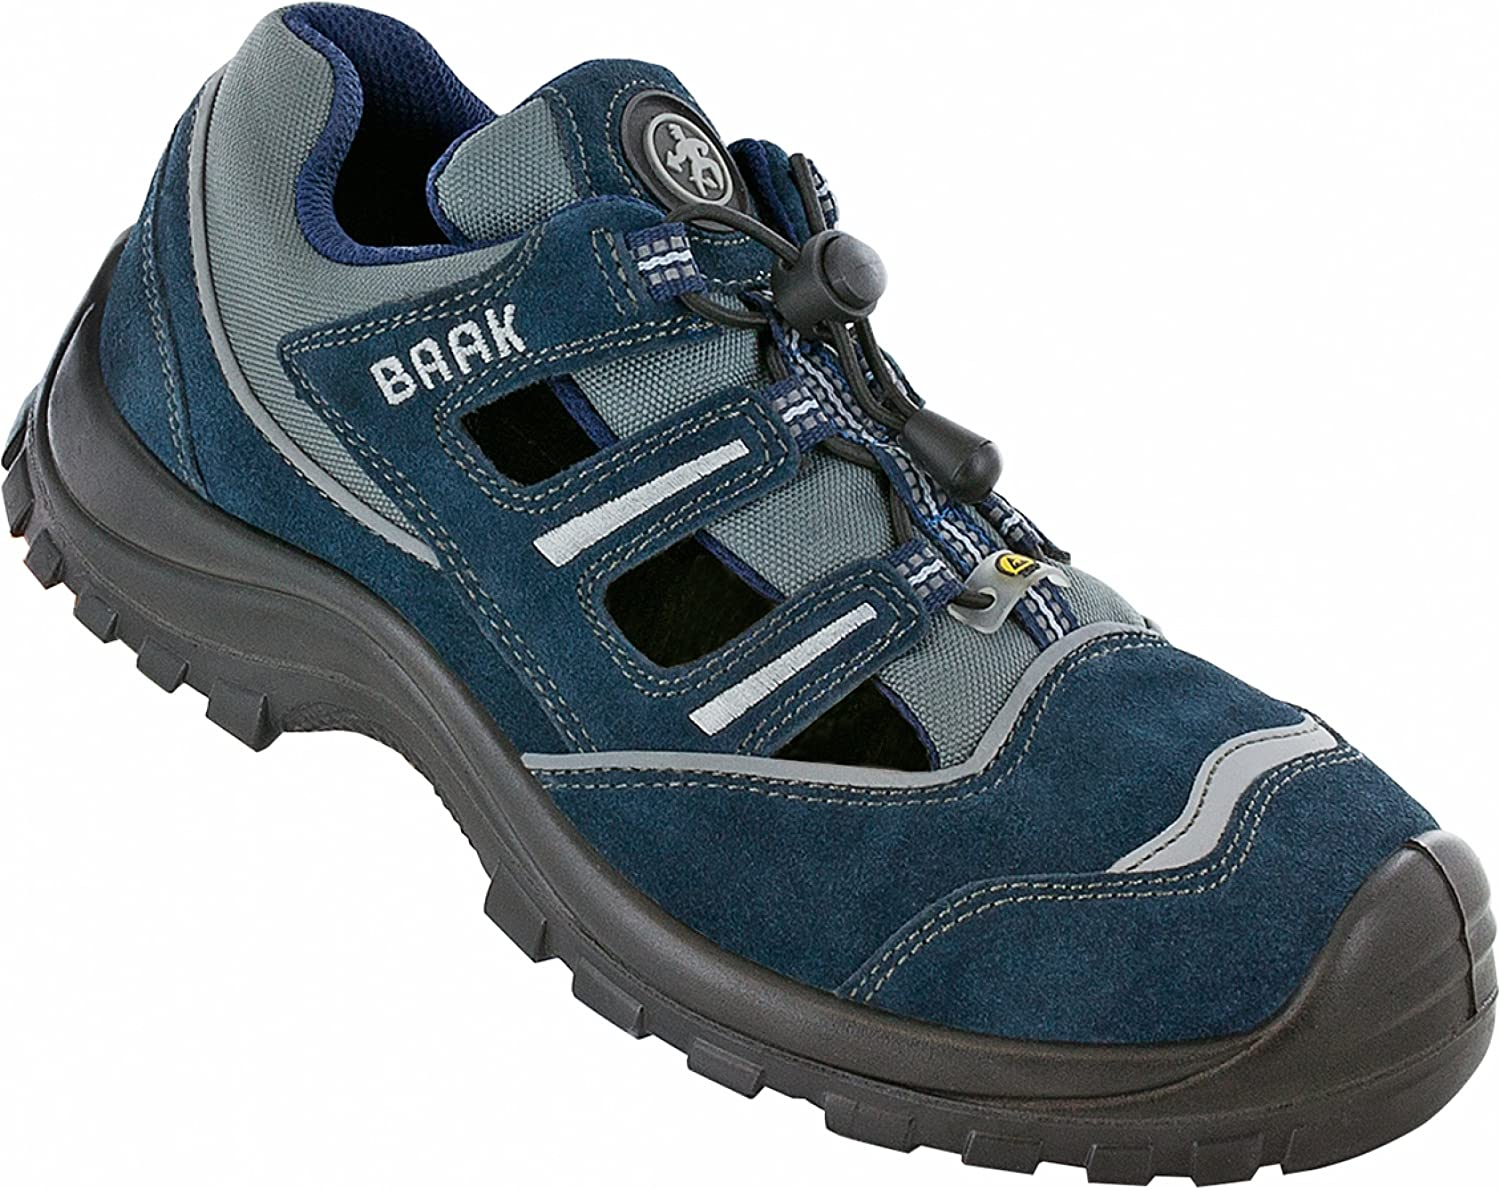 Baak Safety shoes Pit Sports S1P ESD Non-Slip bluee shoes In 7013, 50 EU, bluee - EN safety certified